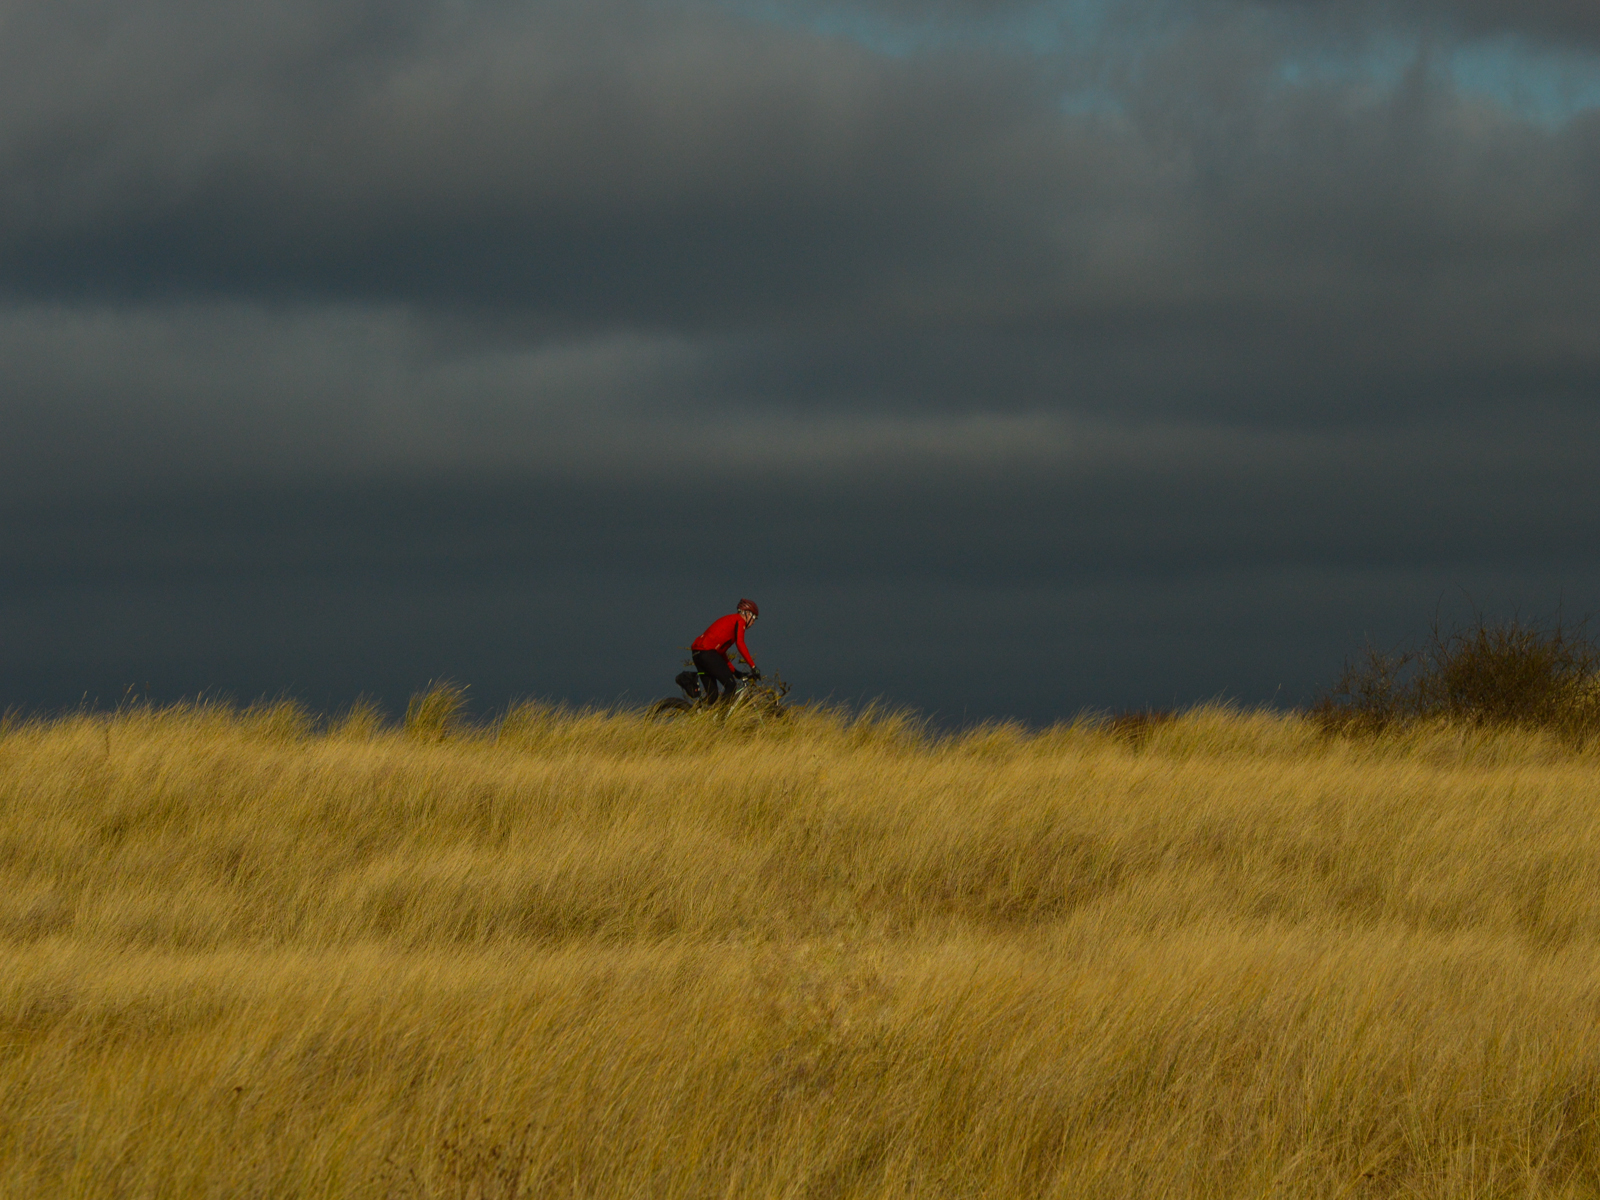 The Red Cyclist.jpg